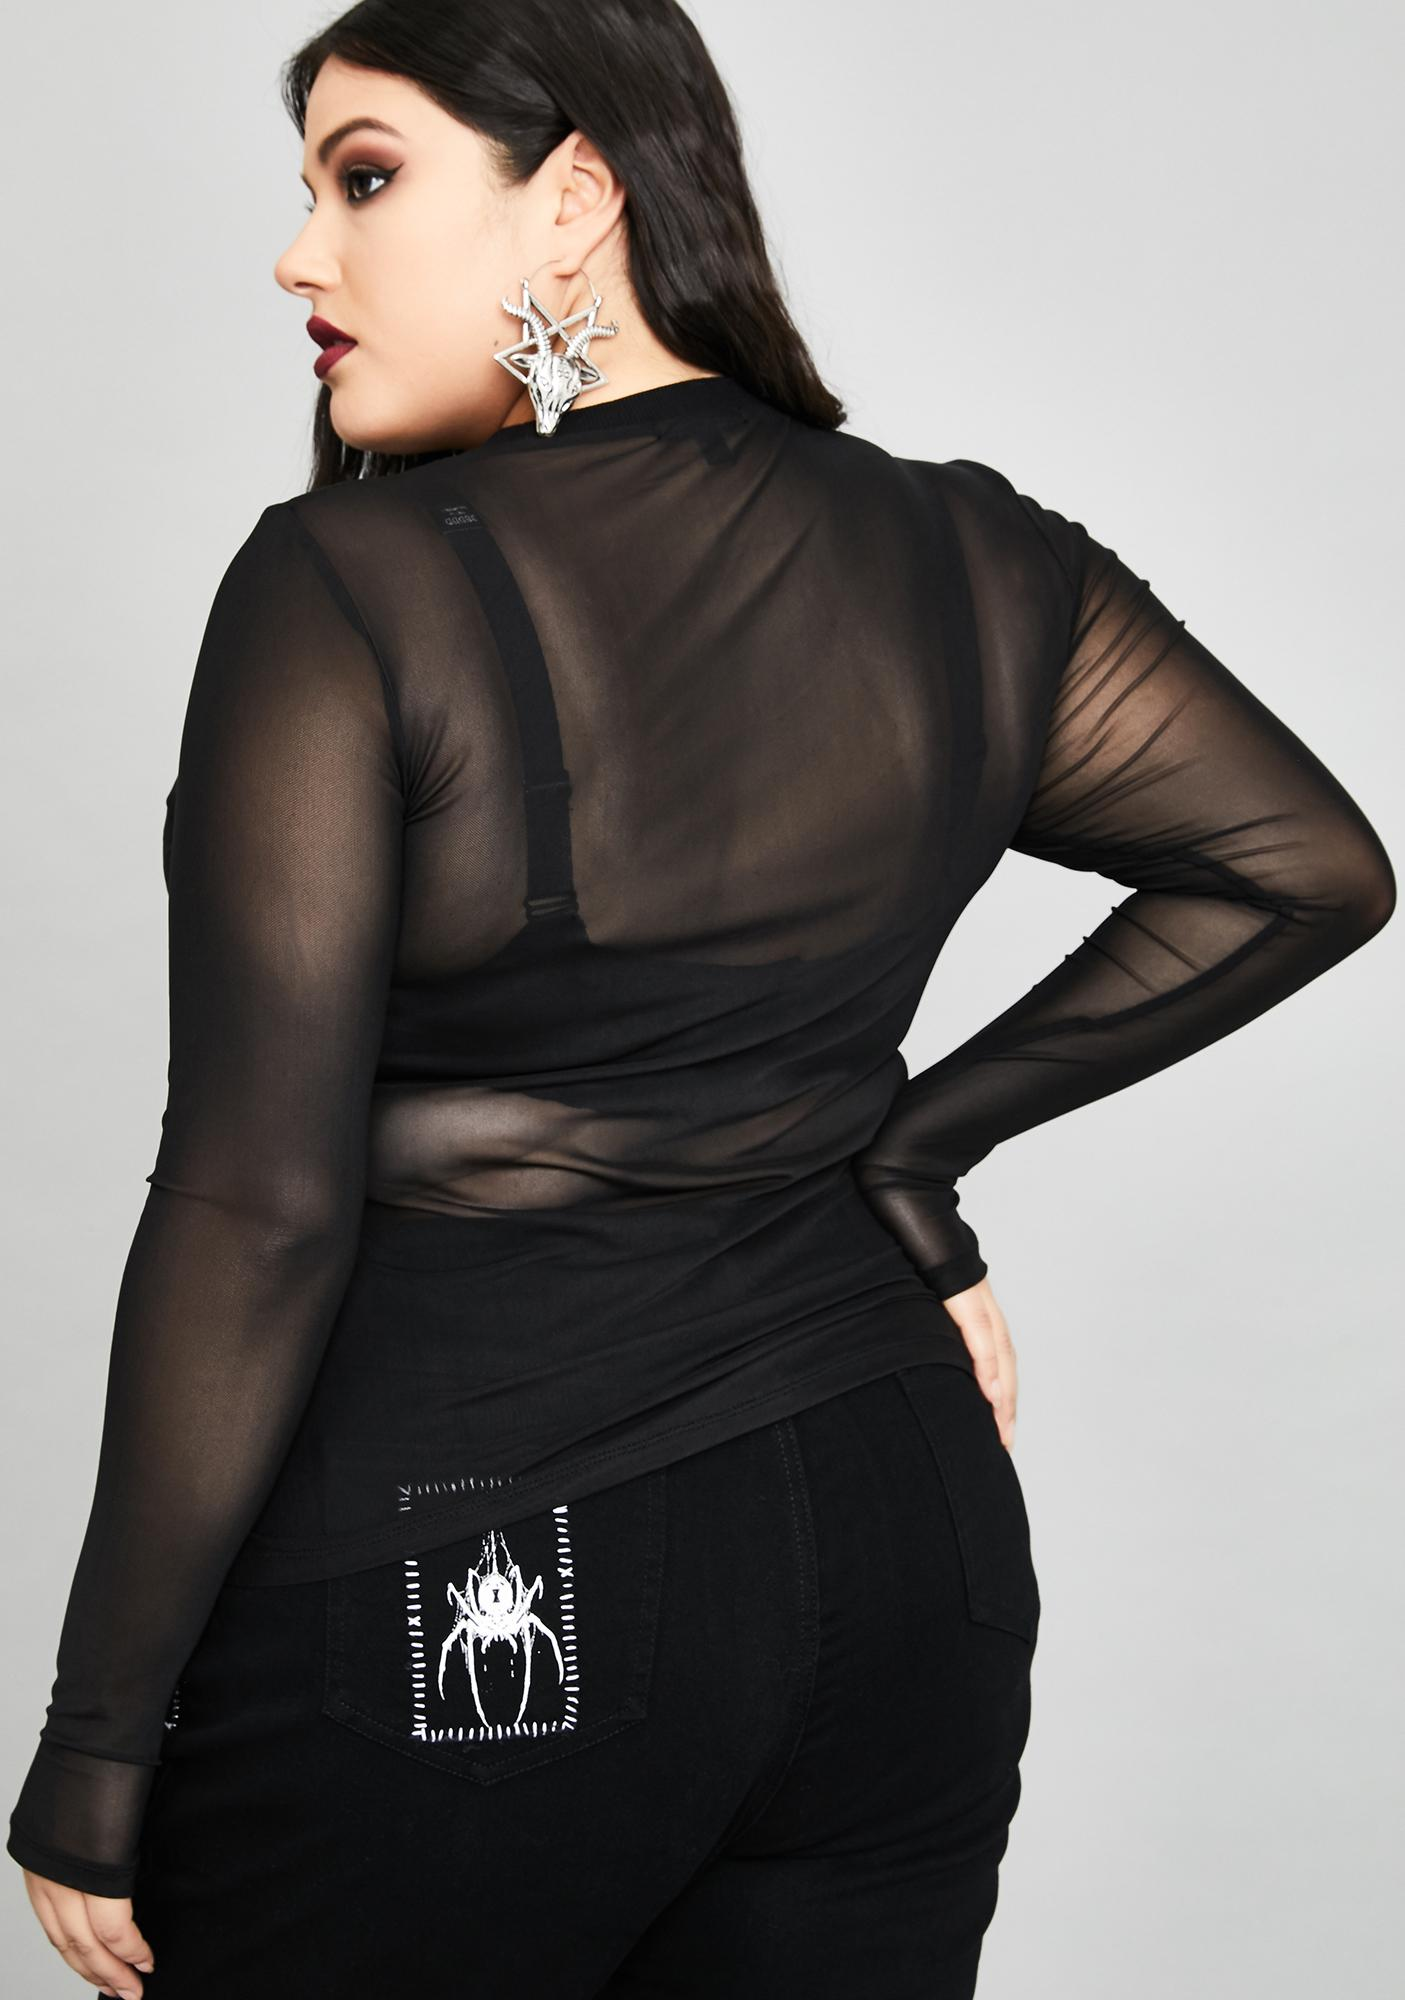 Widow Her Deadly Demise Mesh Top